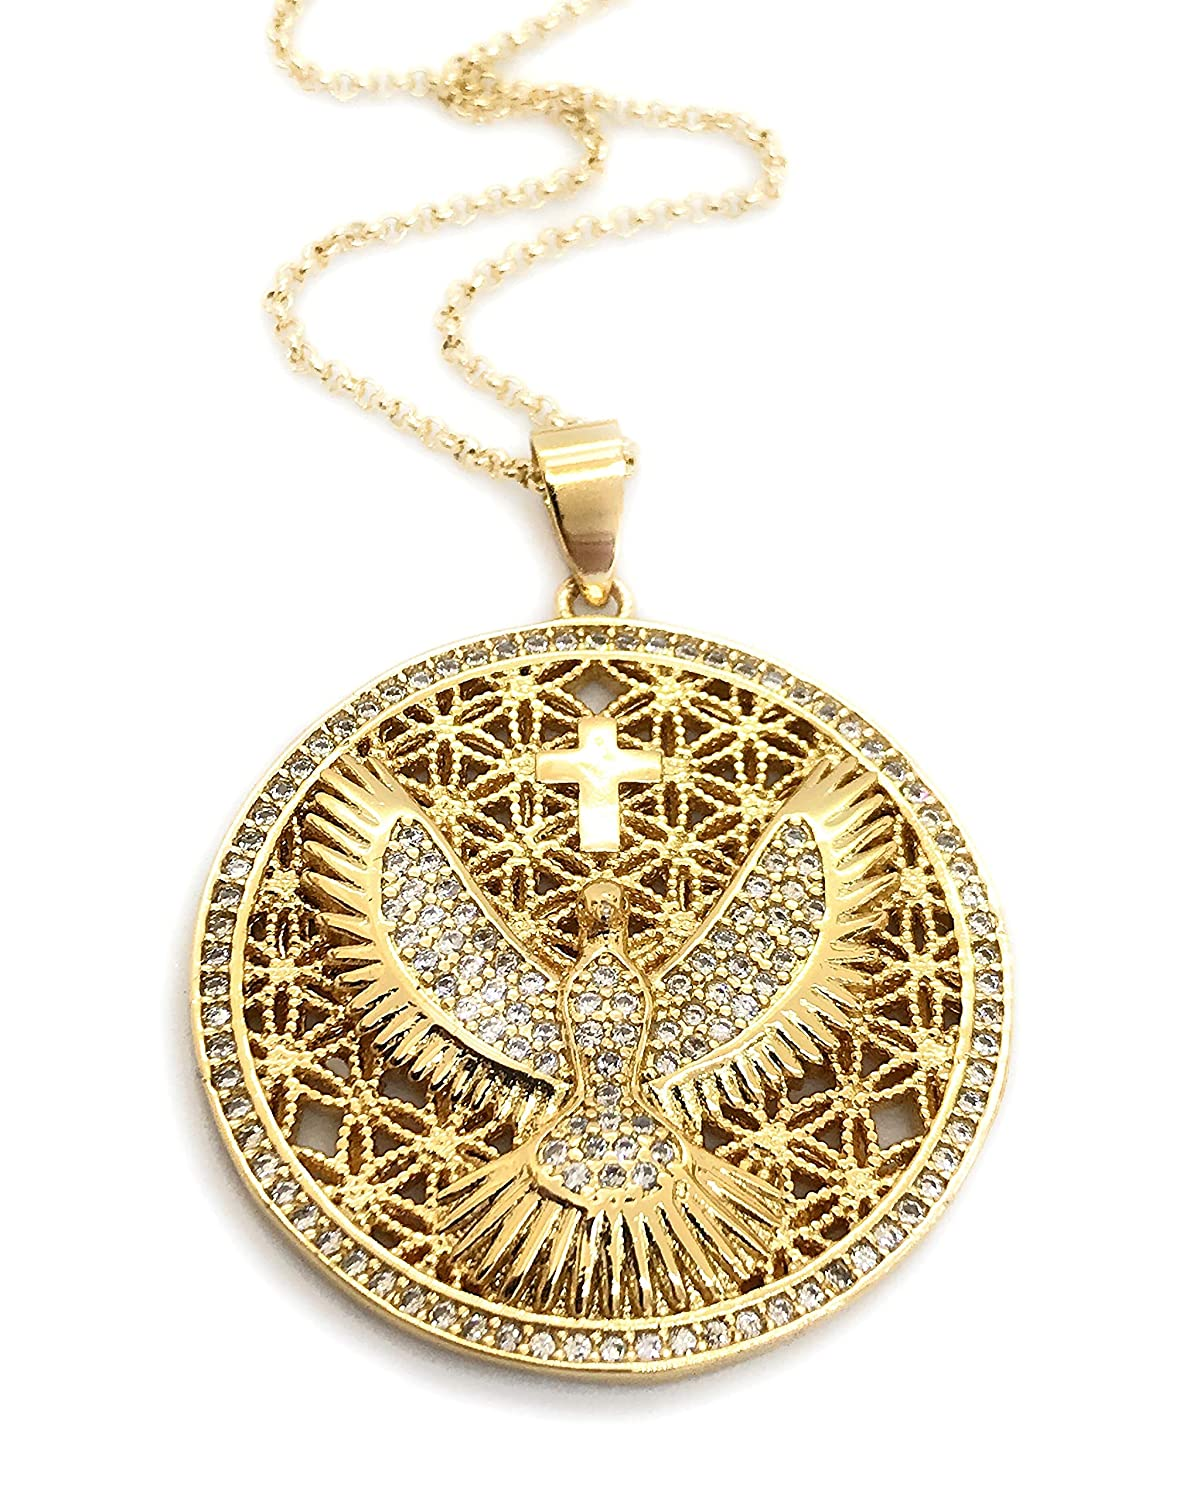 "Gold Holy Spirit Big Pendant Necklace Gold Plated Chain 18"" Religious Jewelry"